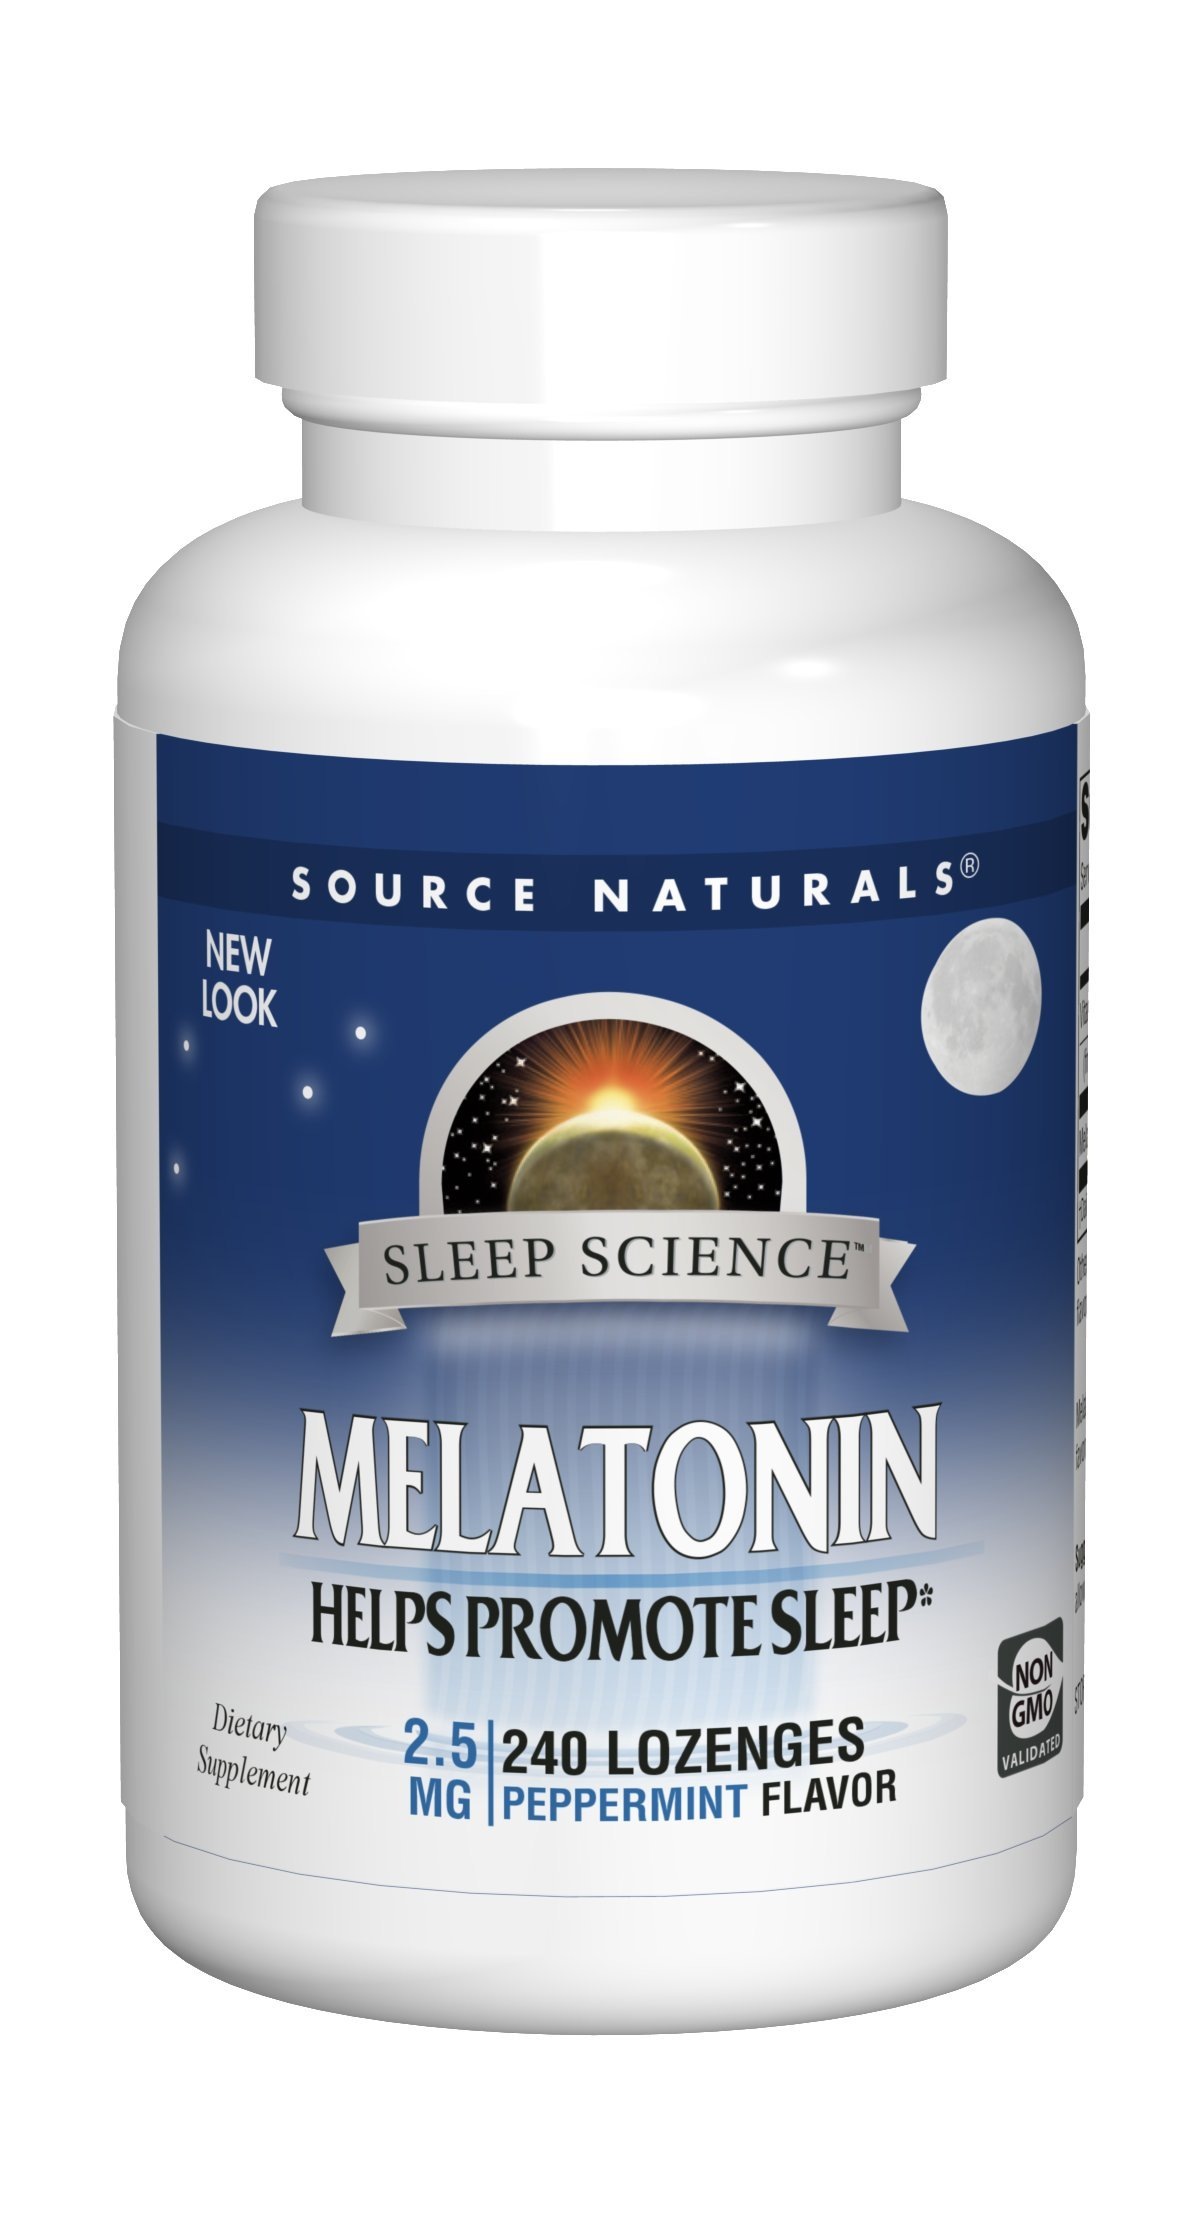 Source Naturals Sleep Science Melatonin 2.5mg Peppermint Flavor Promotes Restful Sleep and Relaxation - Supports